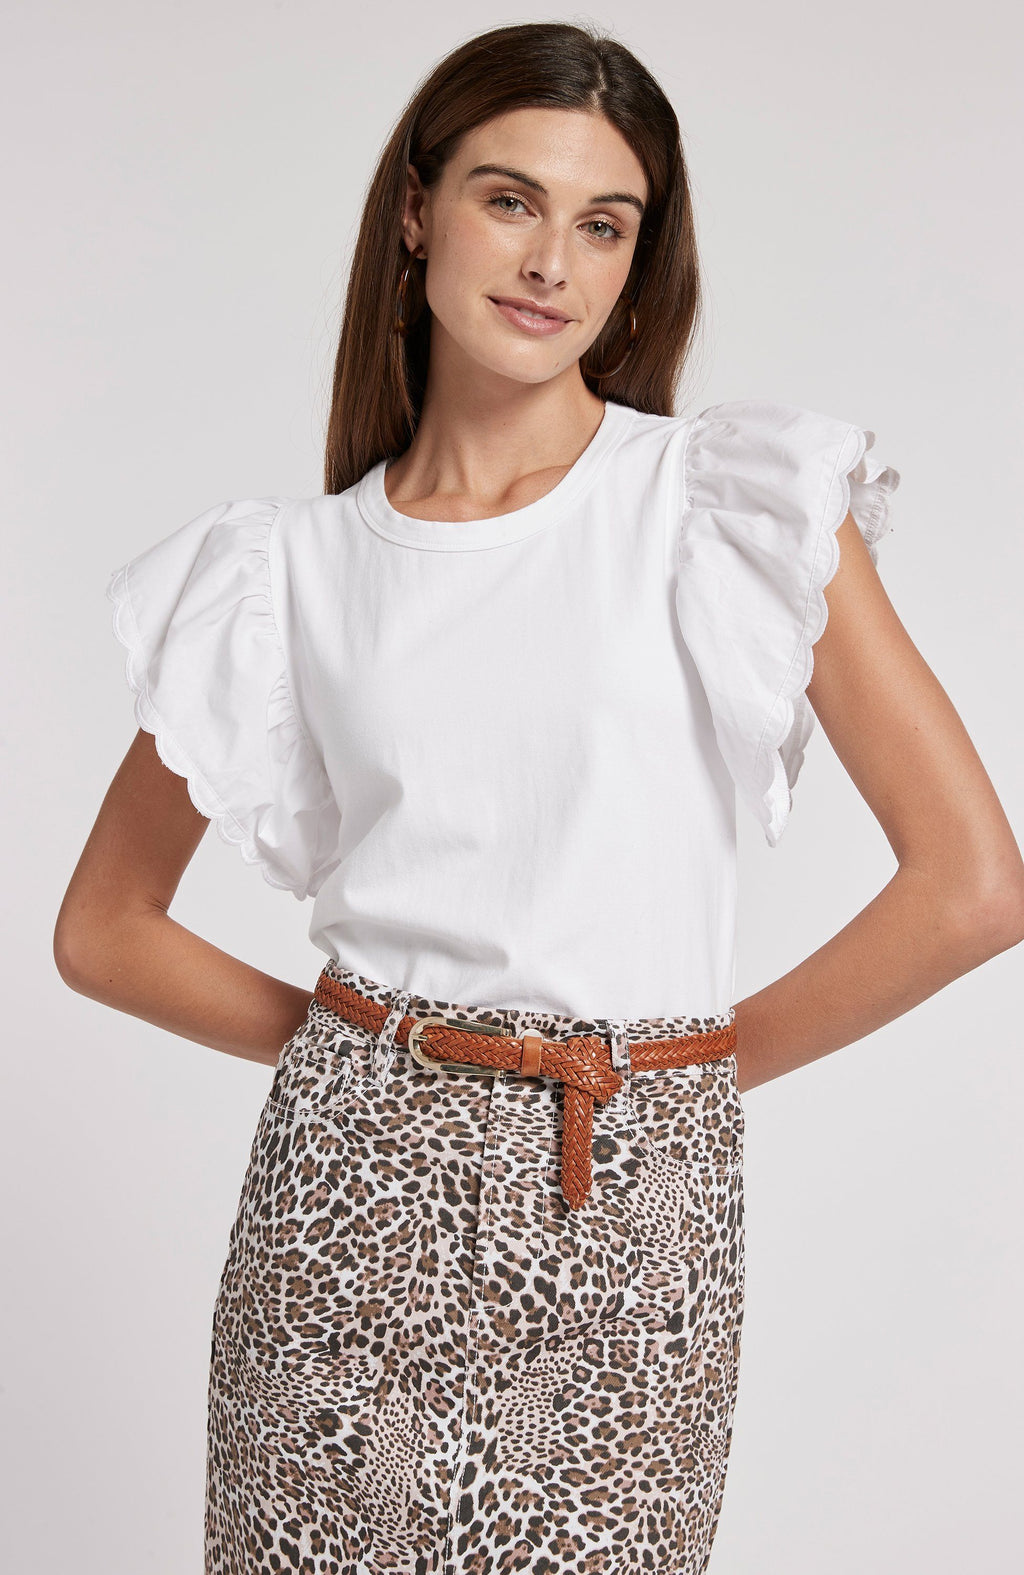 JULIETTE EYELET SLEEVE TOP - WHITE TylerBoe XS WHITE